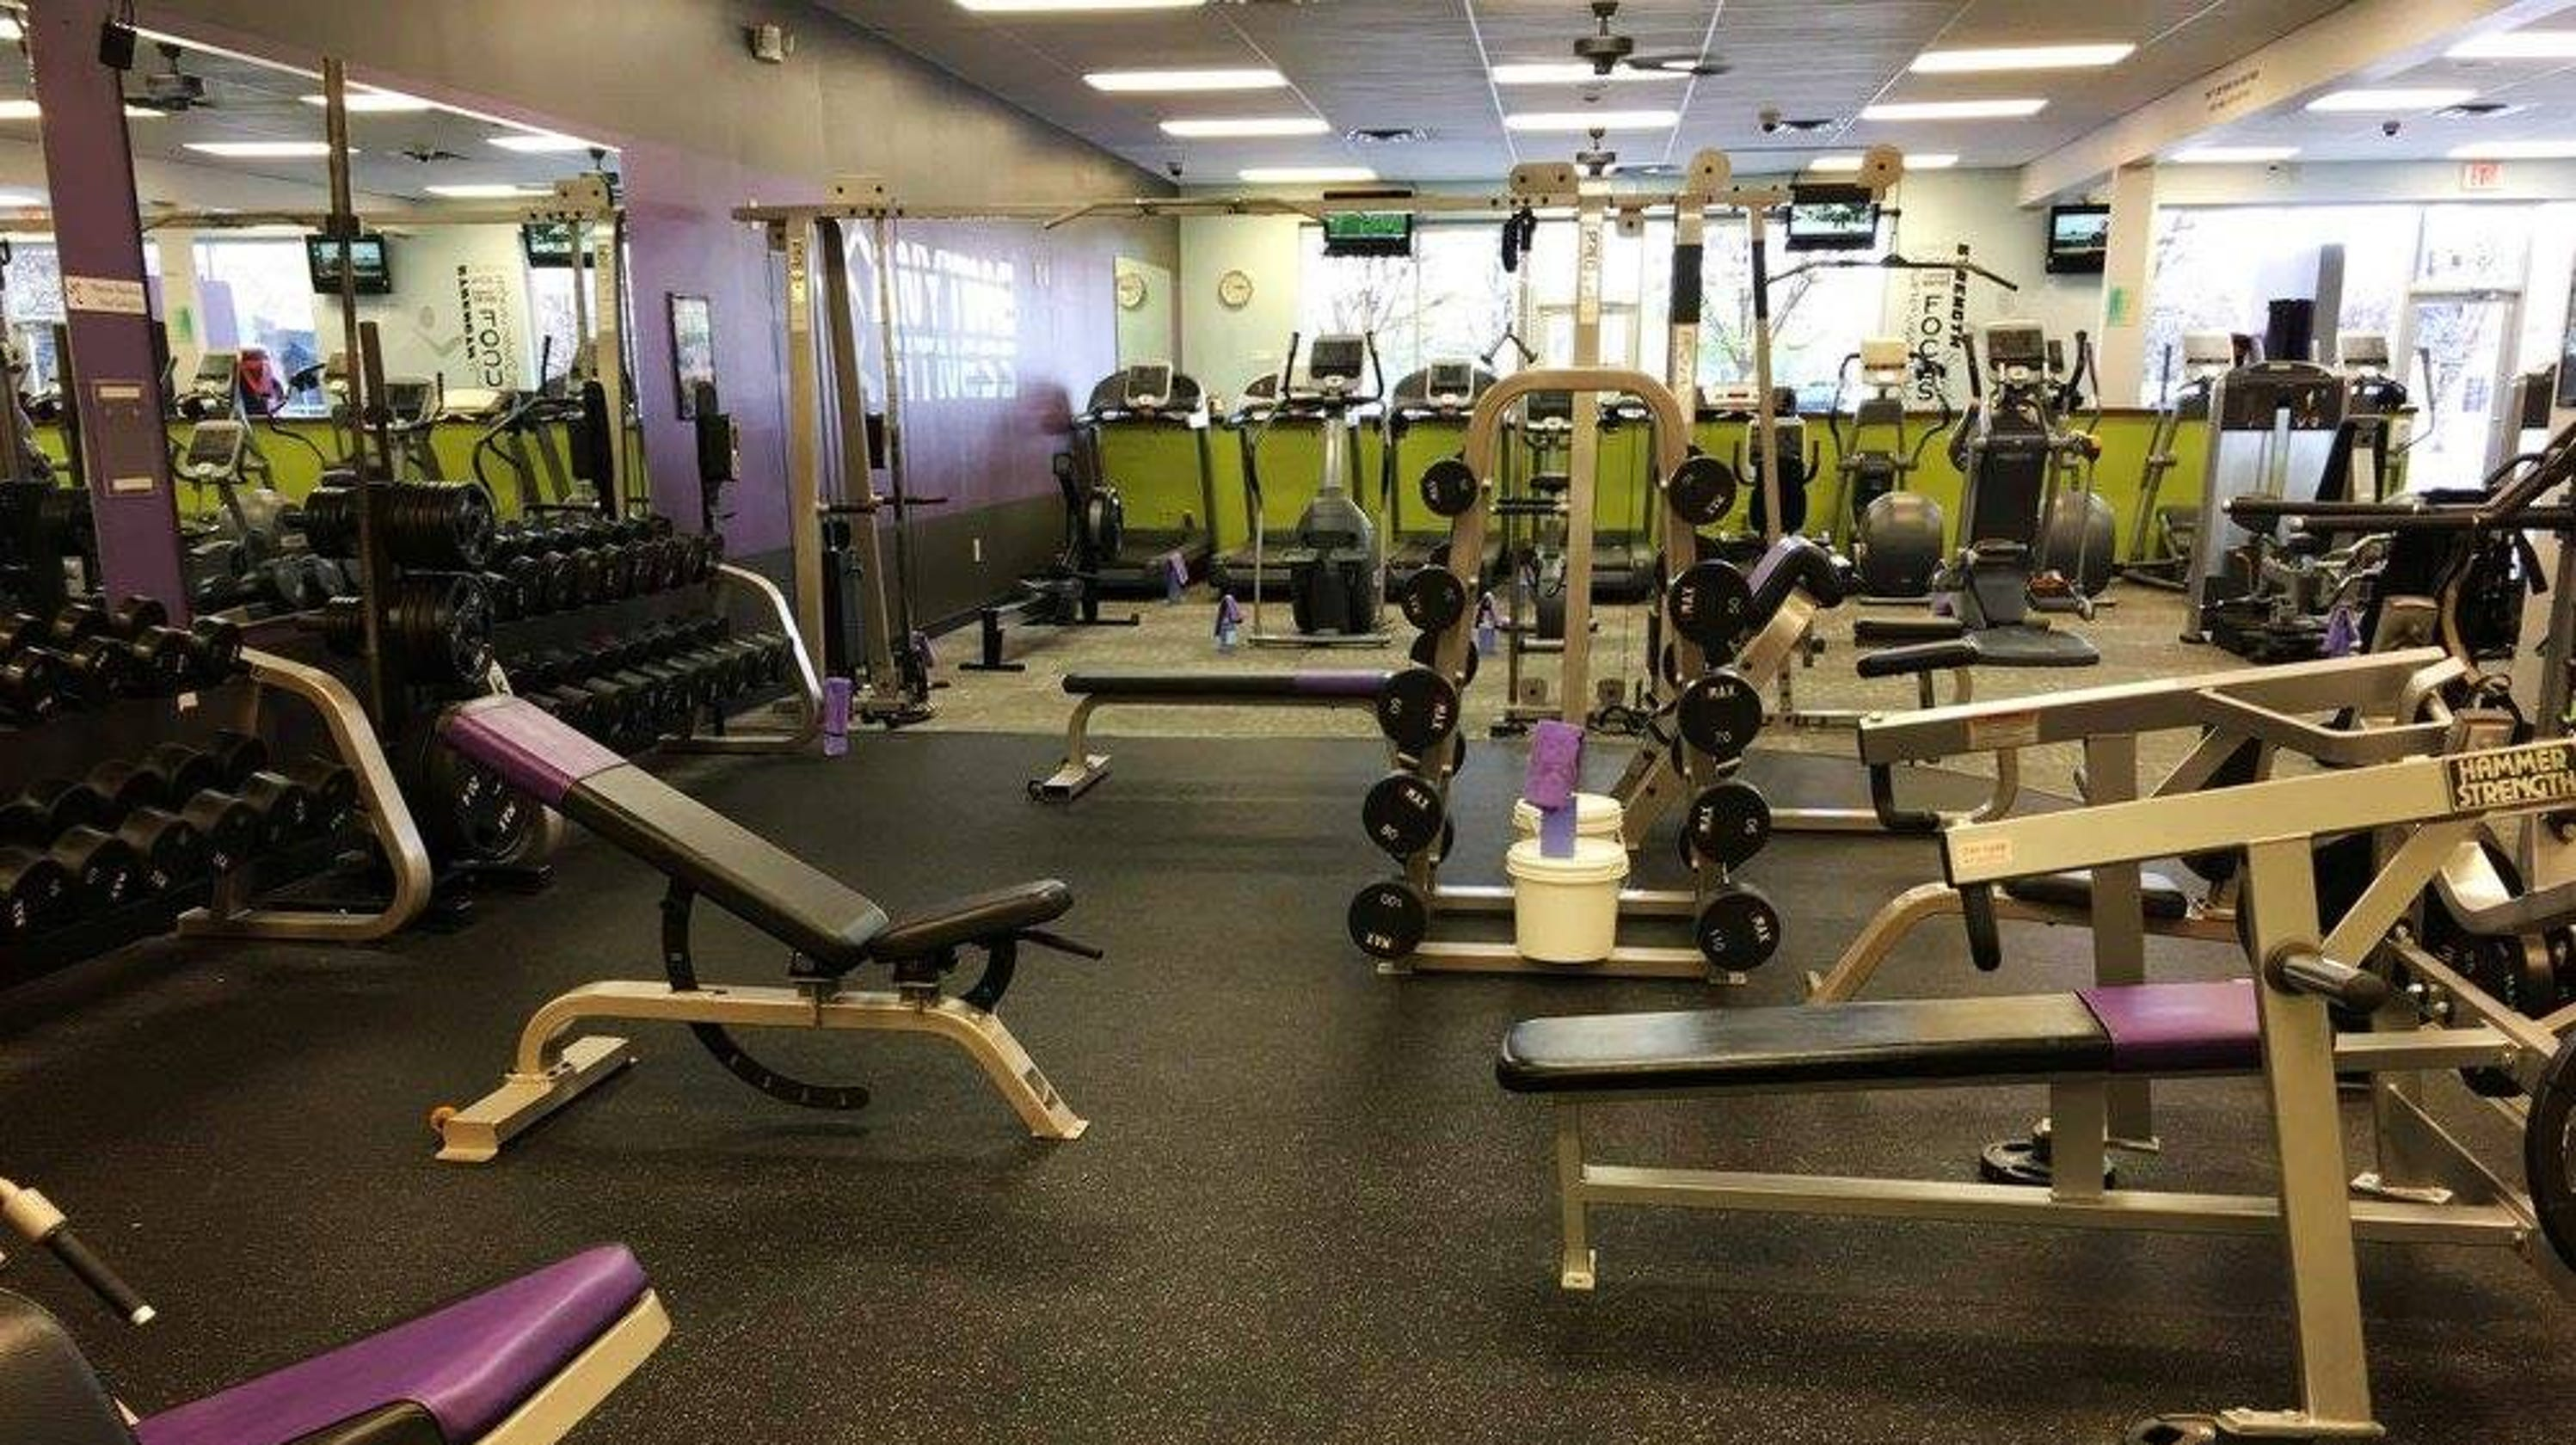 Anytime Fitness Gym Membership Cancellation - Blog Eryna